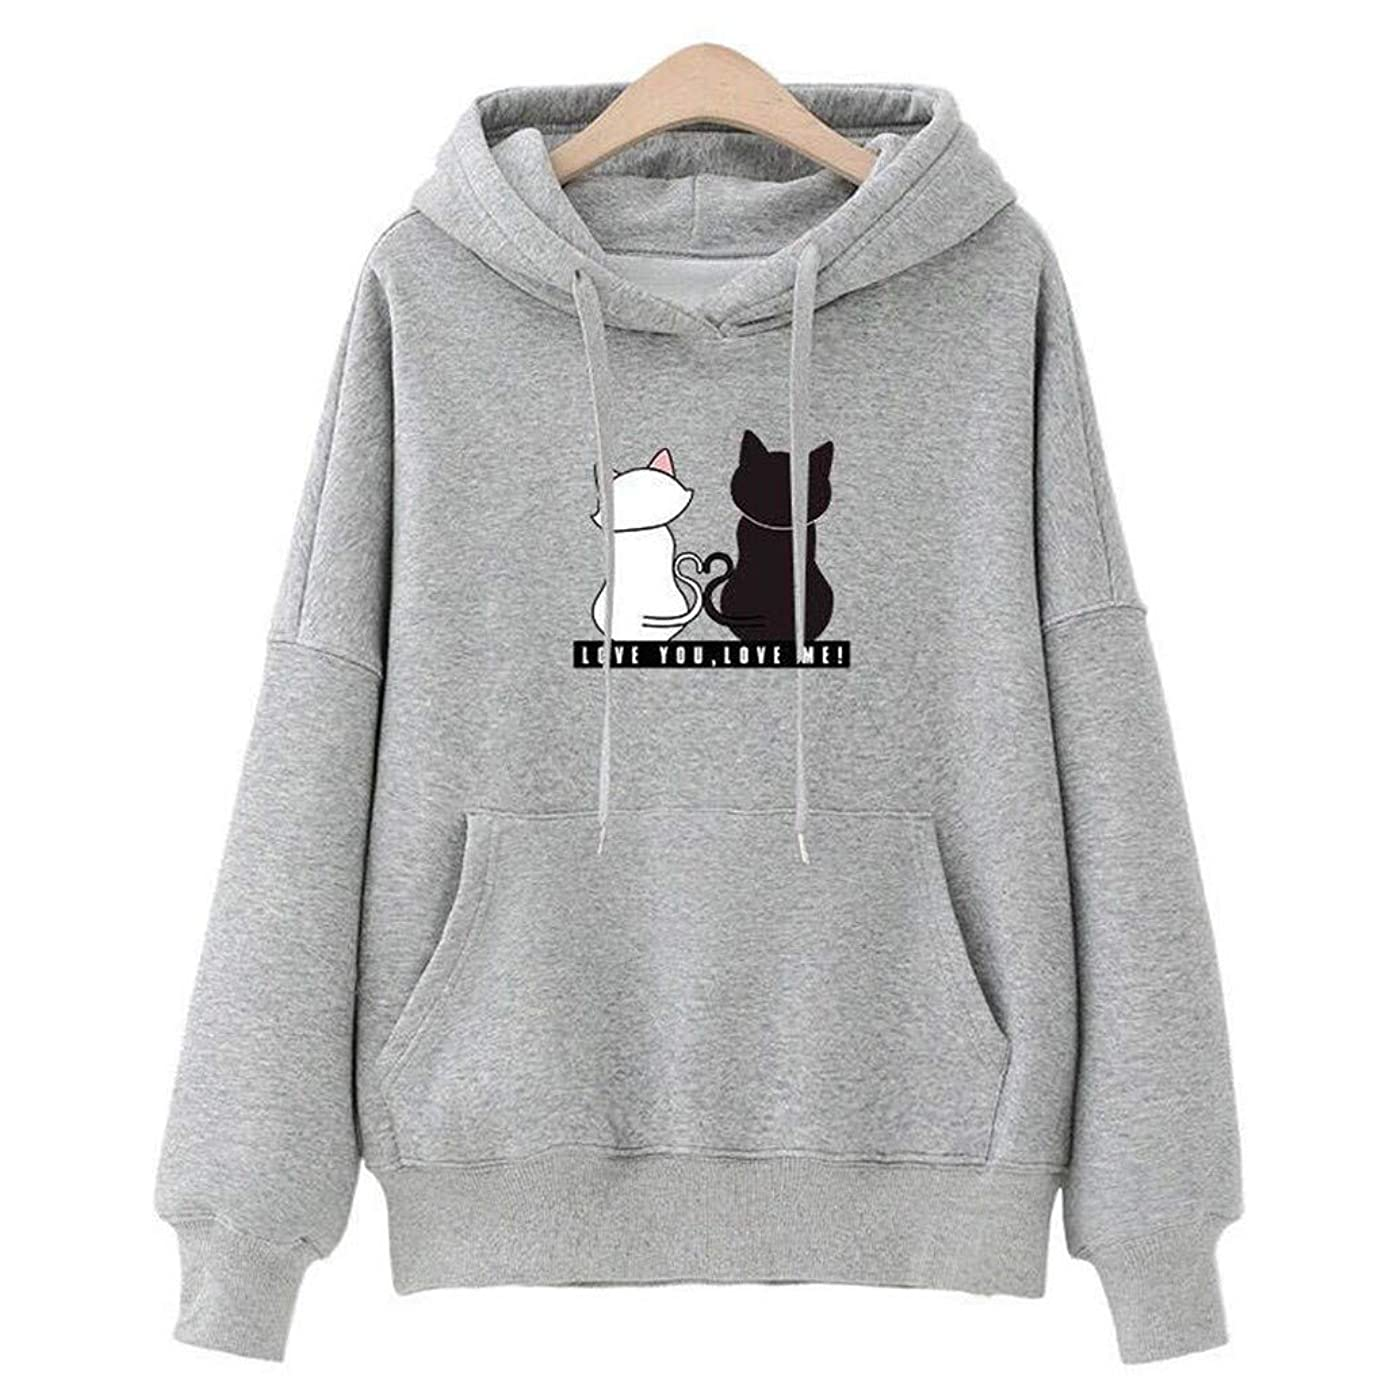 Gyouanime Hoodies Sweater Women Baggy Cat Jumper Pullover Tops Pullover Jumper Sweatshirts Jackets Coats